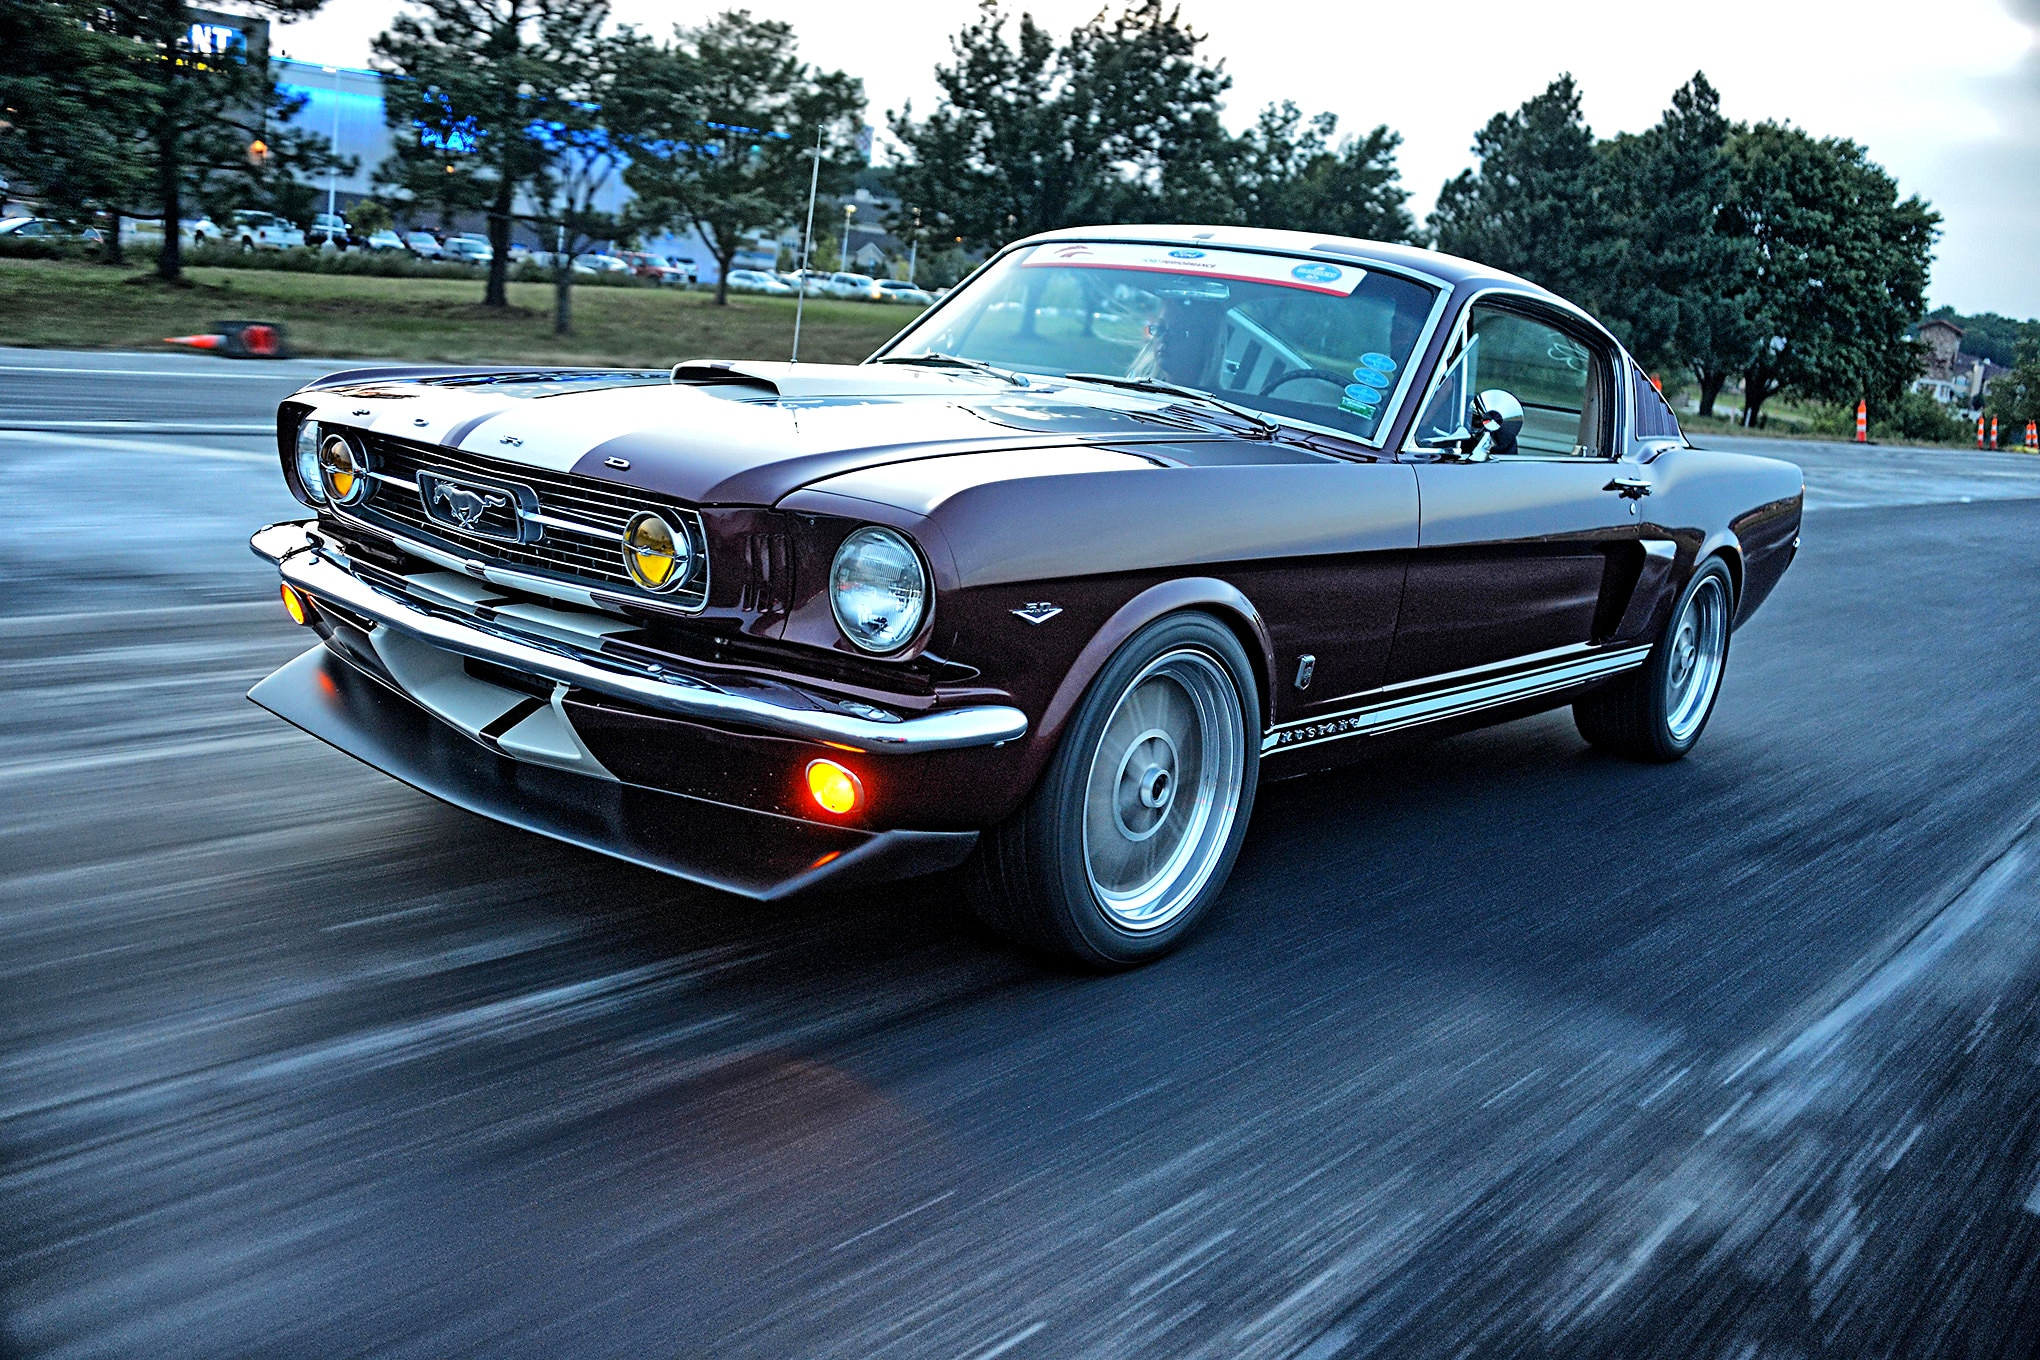 001 Mark Thomure 1966 Mustang GT Fastback